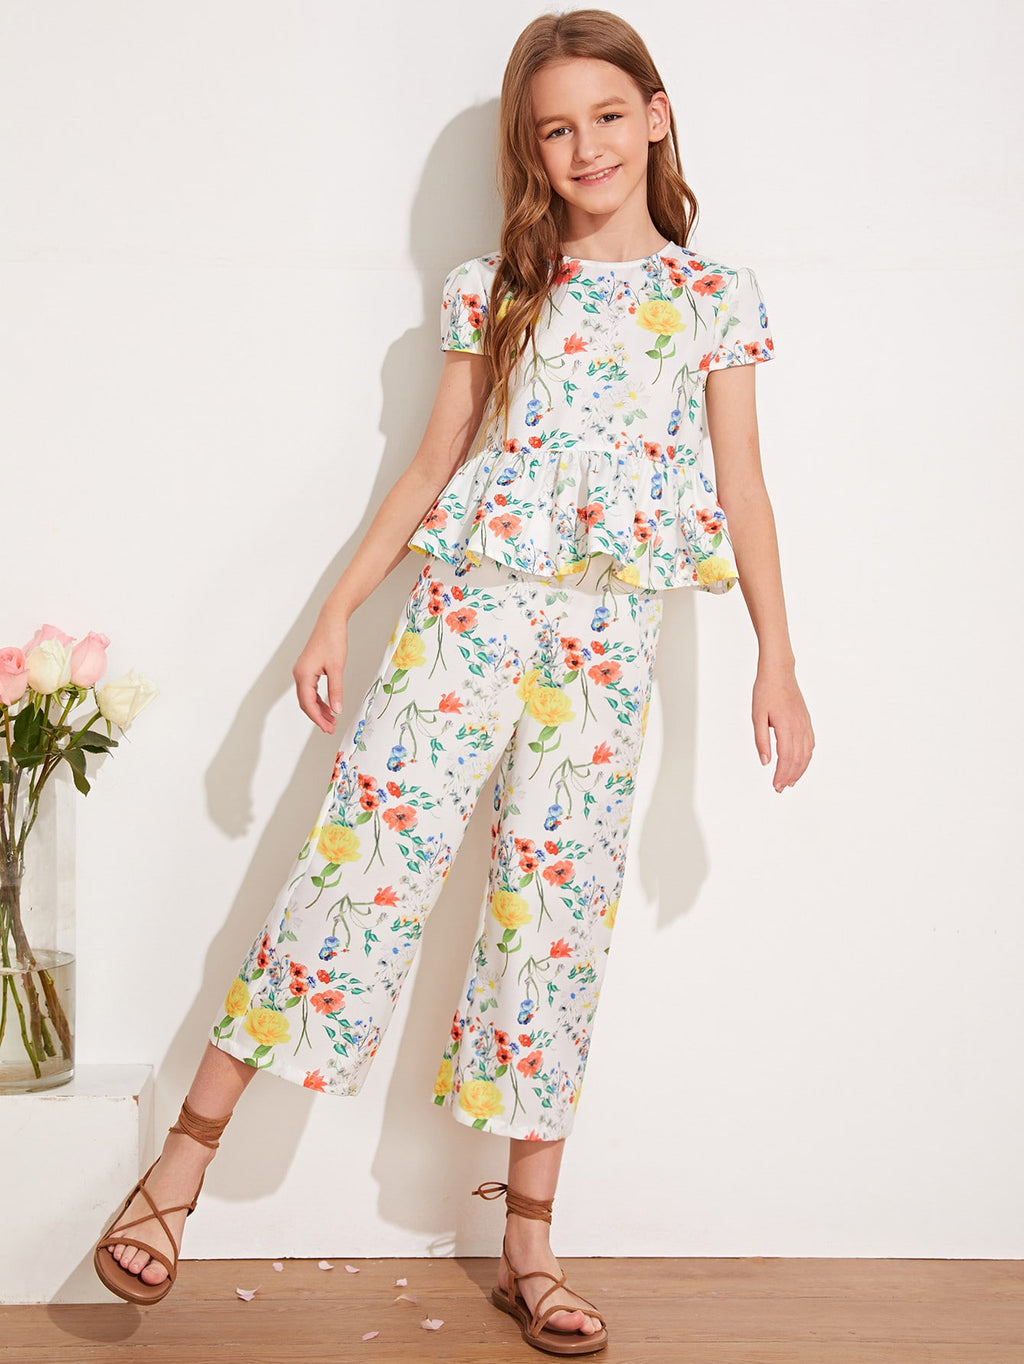 Girls Keyhole Back Floral Print Peplum Top & Cropped Pants Set